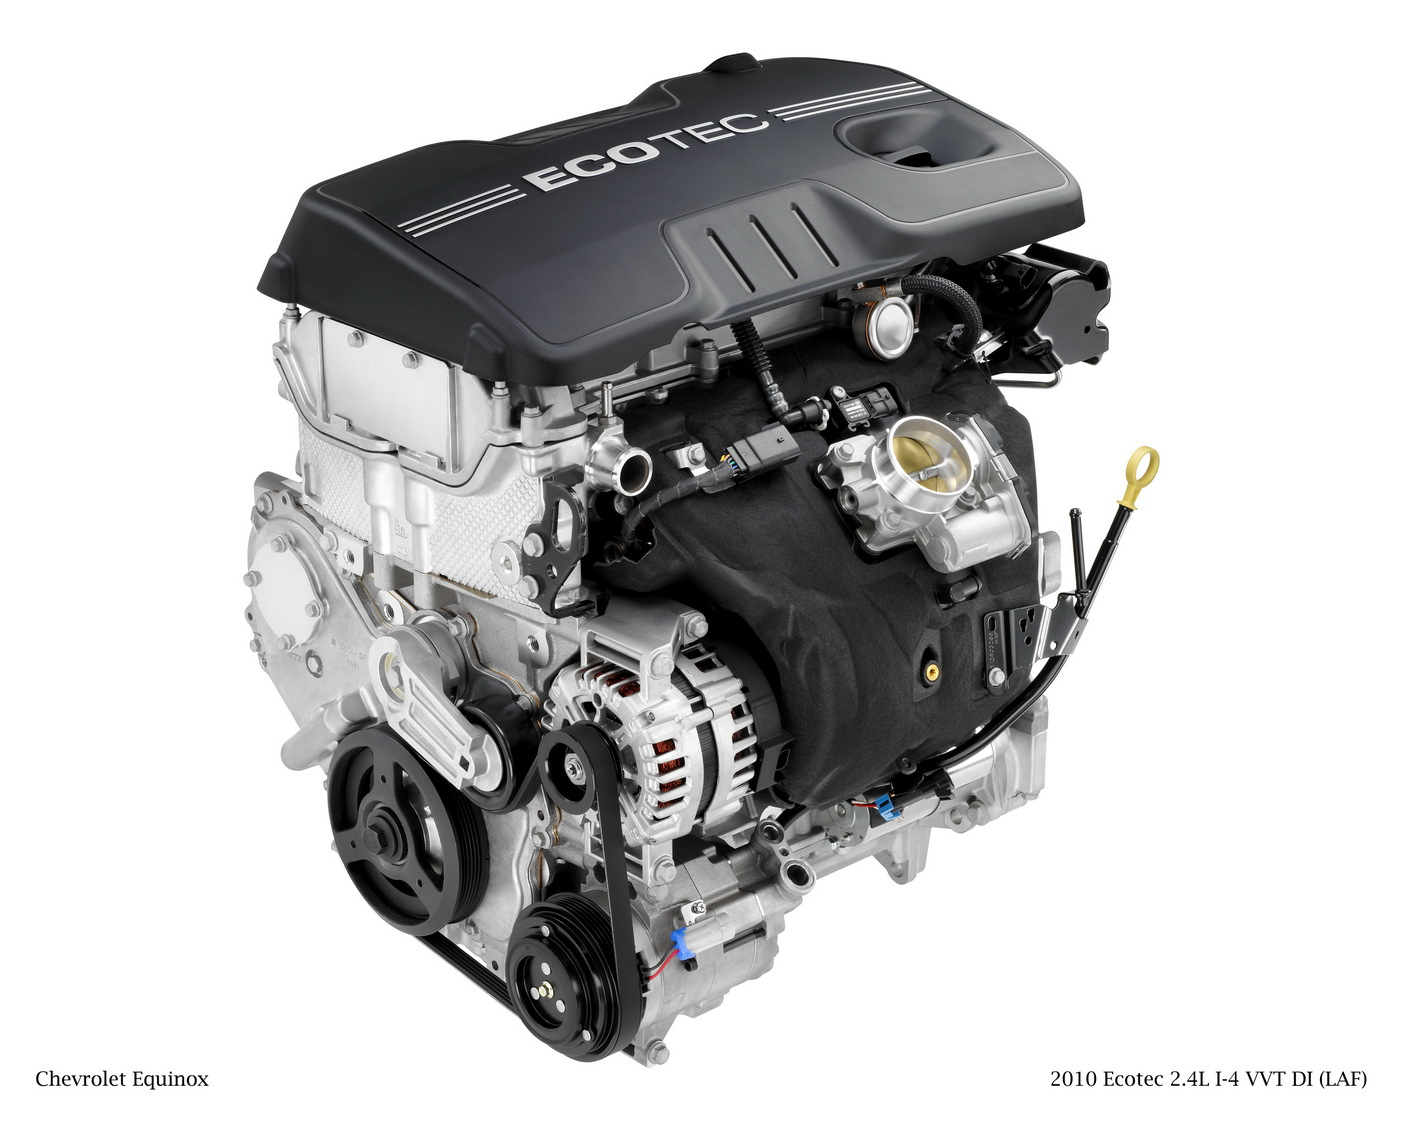 hight resolution of how do you change serpentine belt on 2010 2 4 ltr nox equinoxforumreport this image